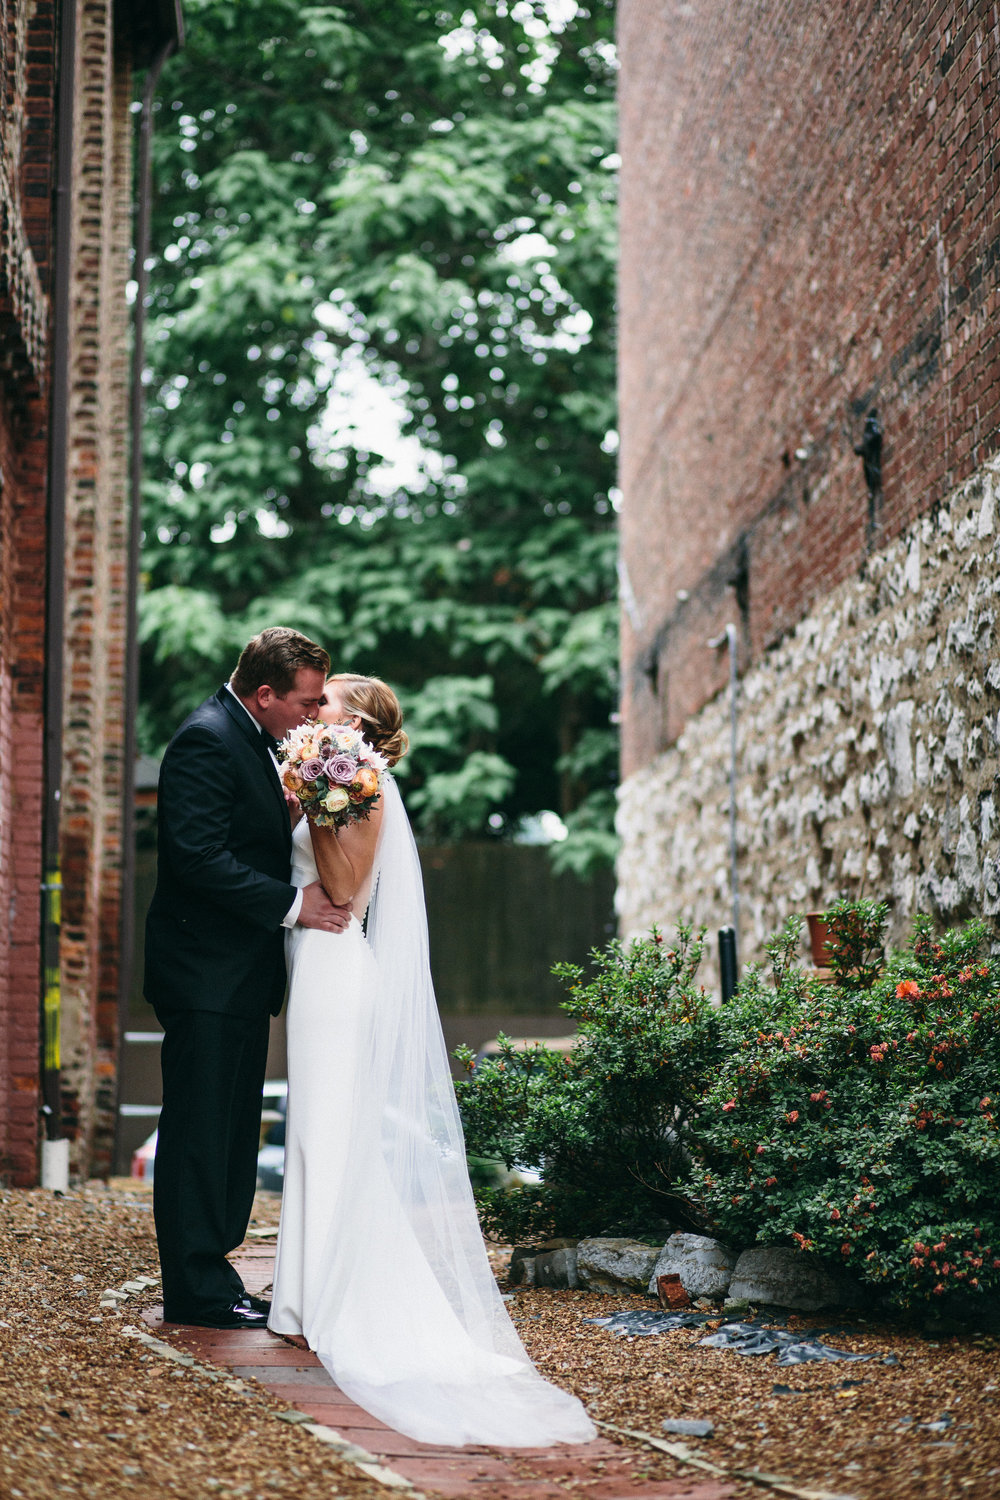 Urban Wedding // Nashville Floral Design